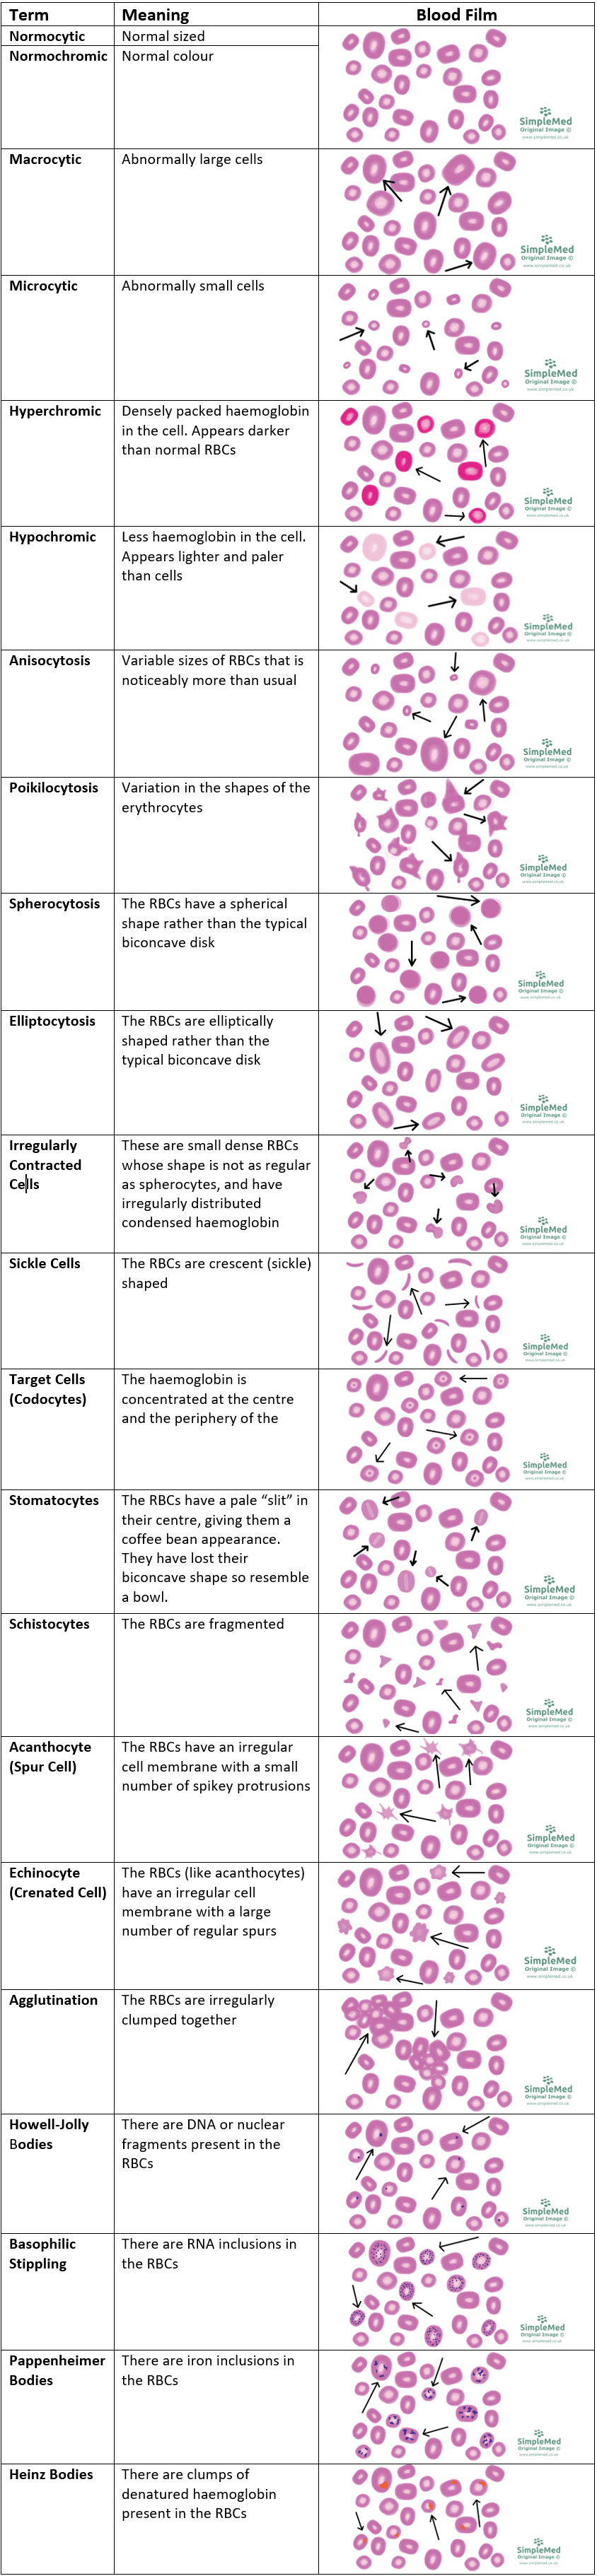 Different Blood Film SimpleMed